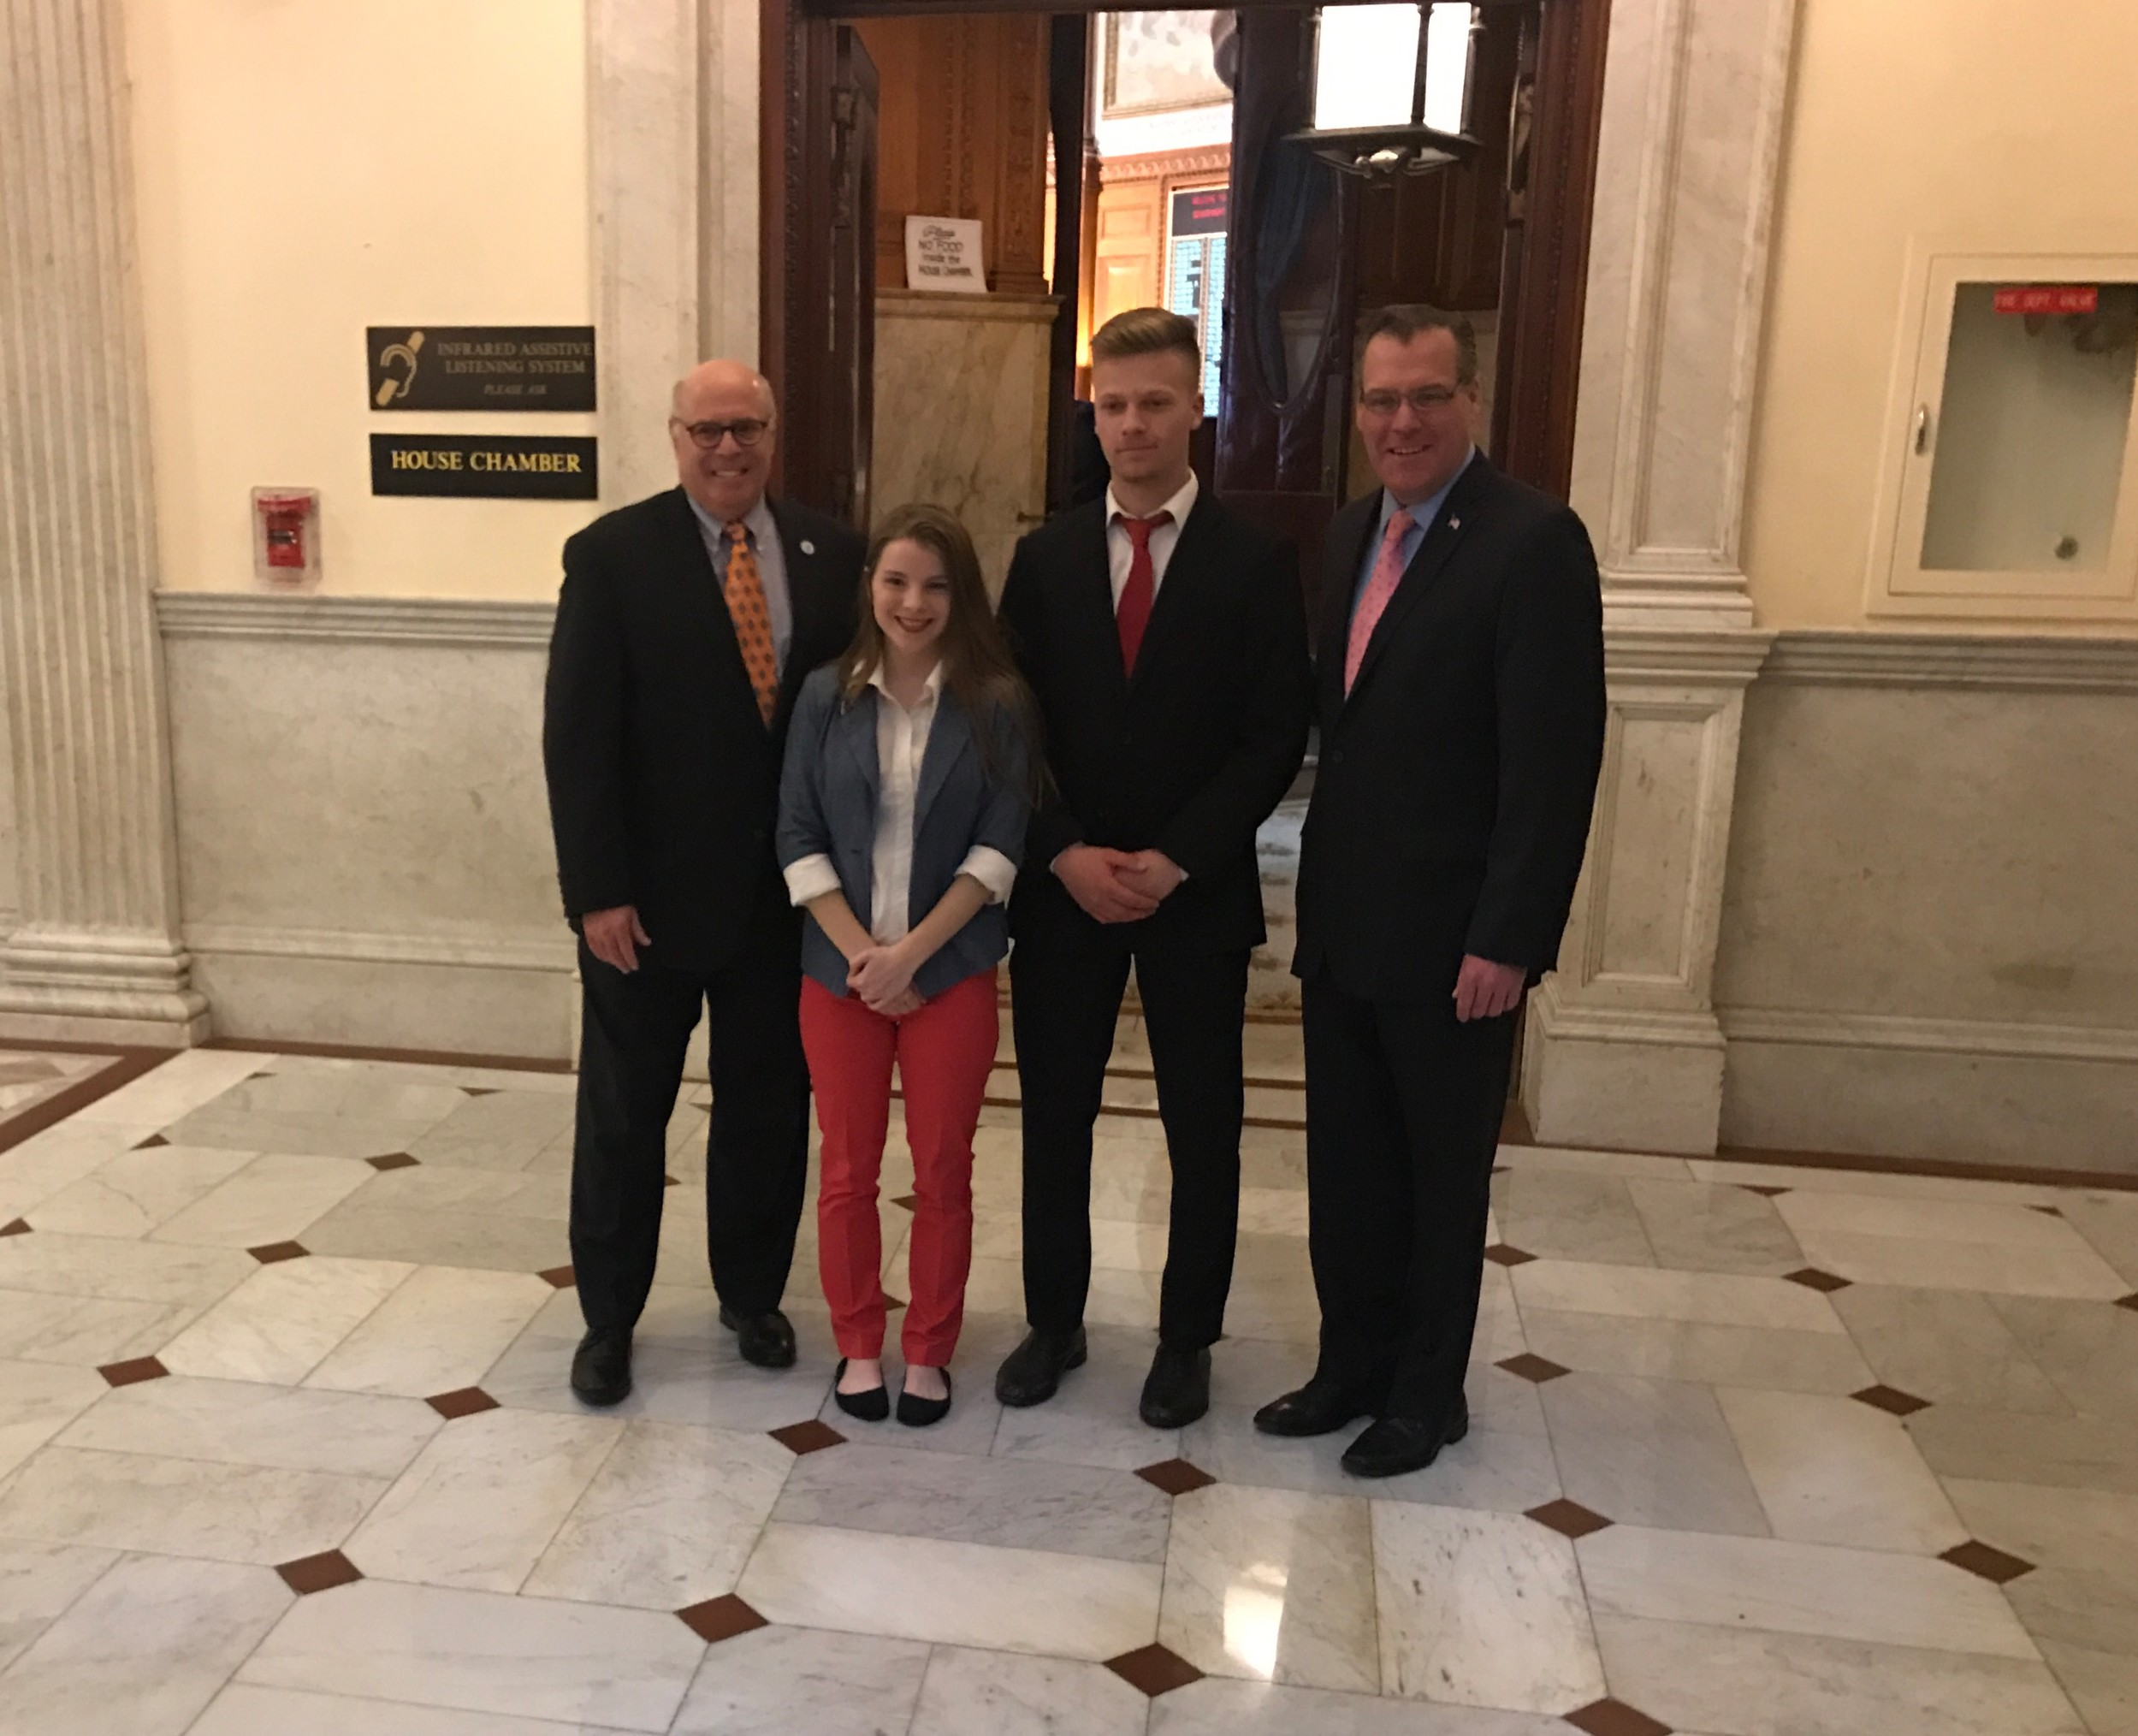 Jessica-Lyn Sweet and Joshua Lane of Seekonk HS with JT and Representative Howitt